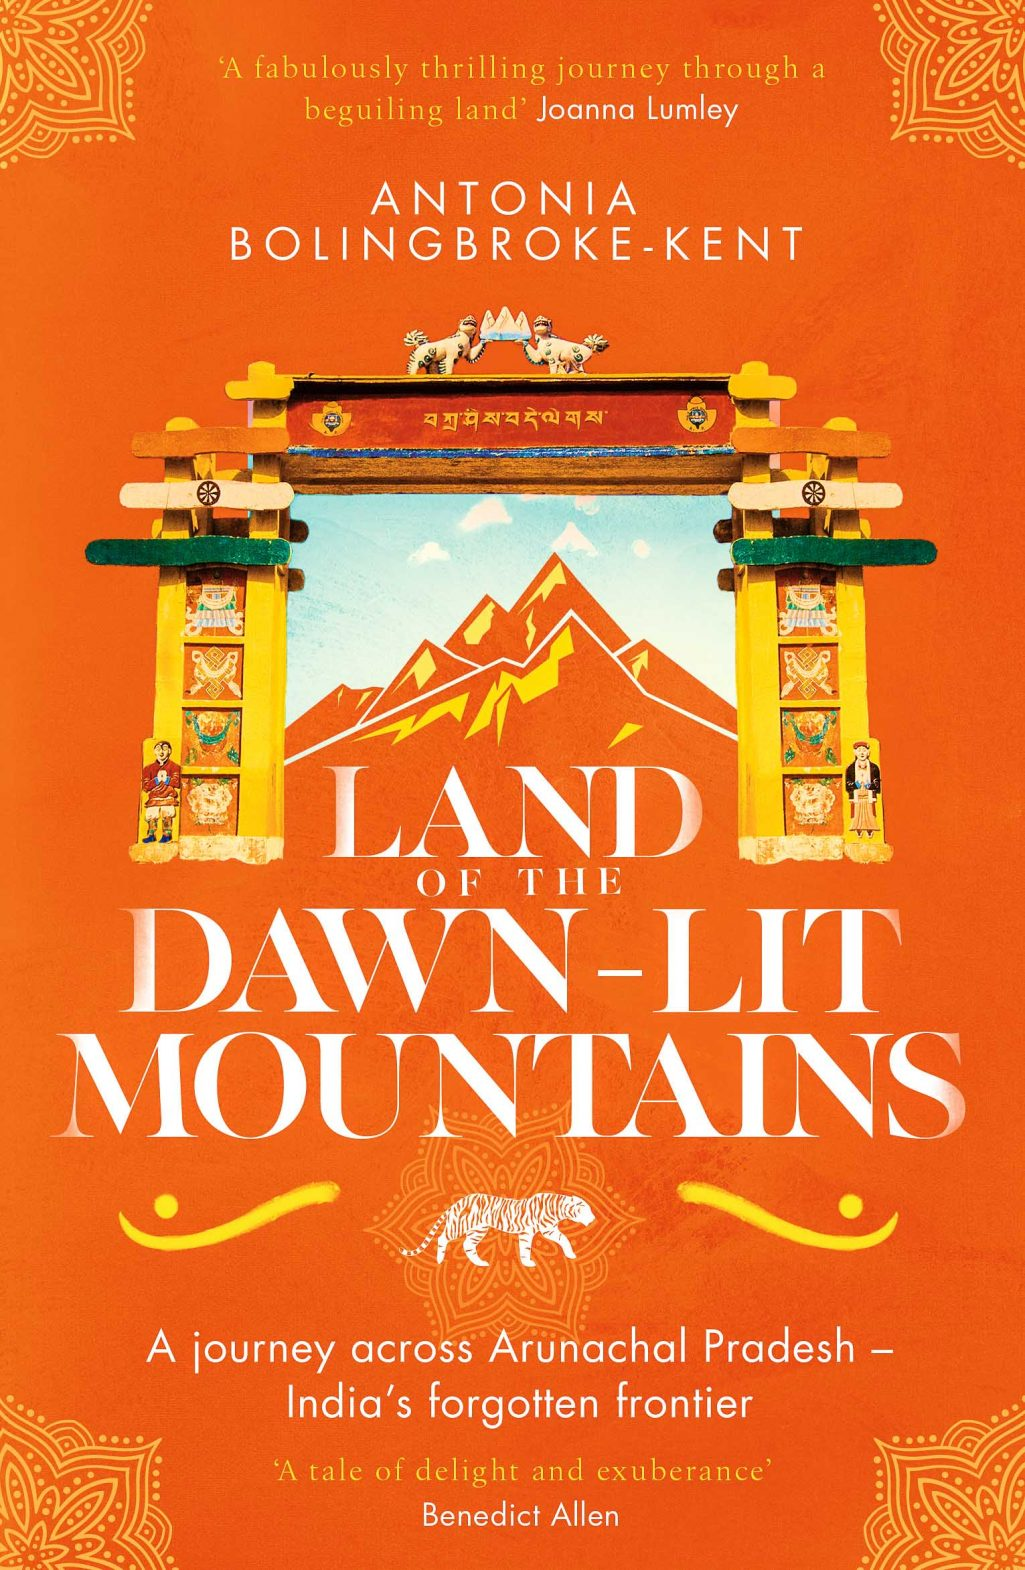 'Land of the Dawn-lit Mountains' is nominated for the 2018 Edward Stanford Wanderlust Adventure Travel Book of the Year.